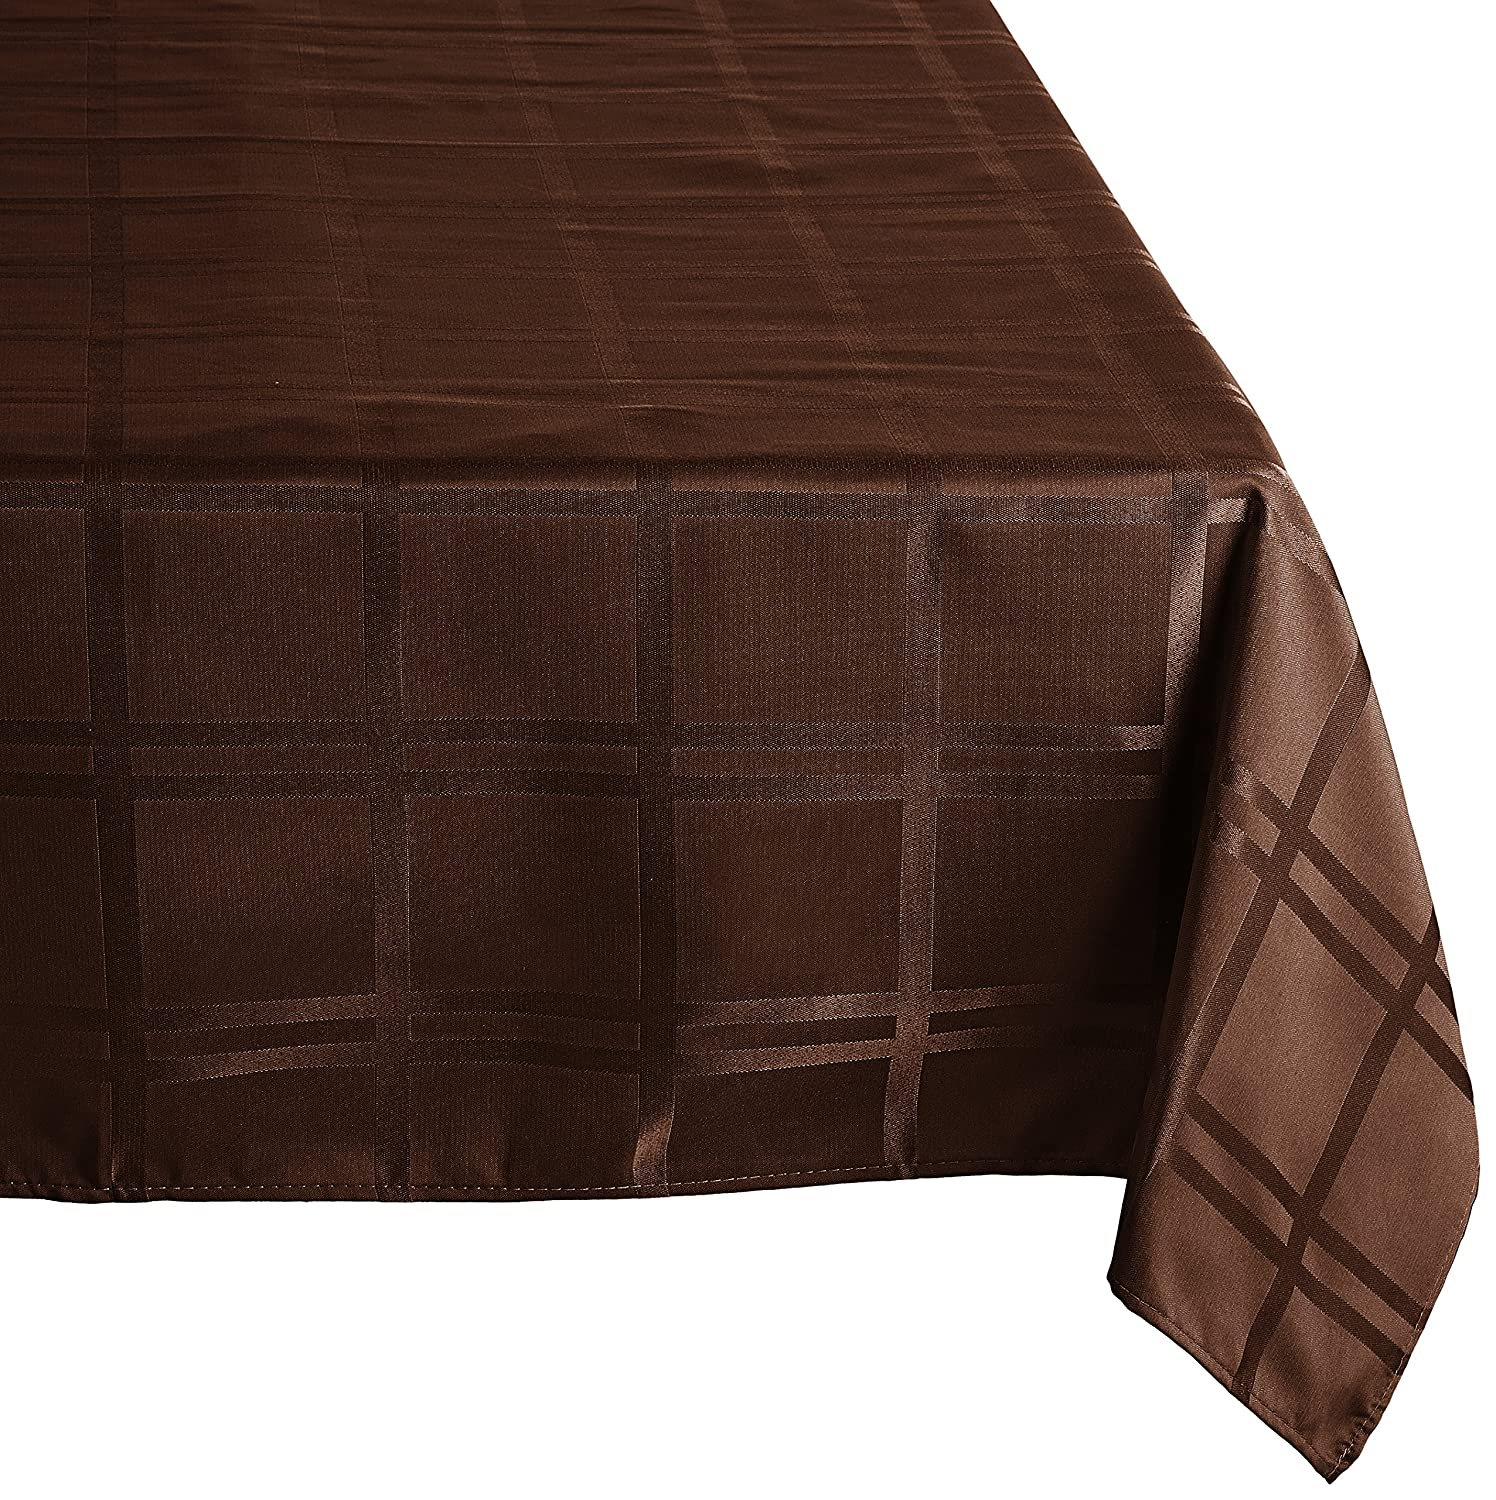 Cuisinart Easy Care Spill-Proof Microfiber Fabric Round Formal Tablecloth, 70 inch, Brown